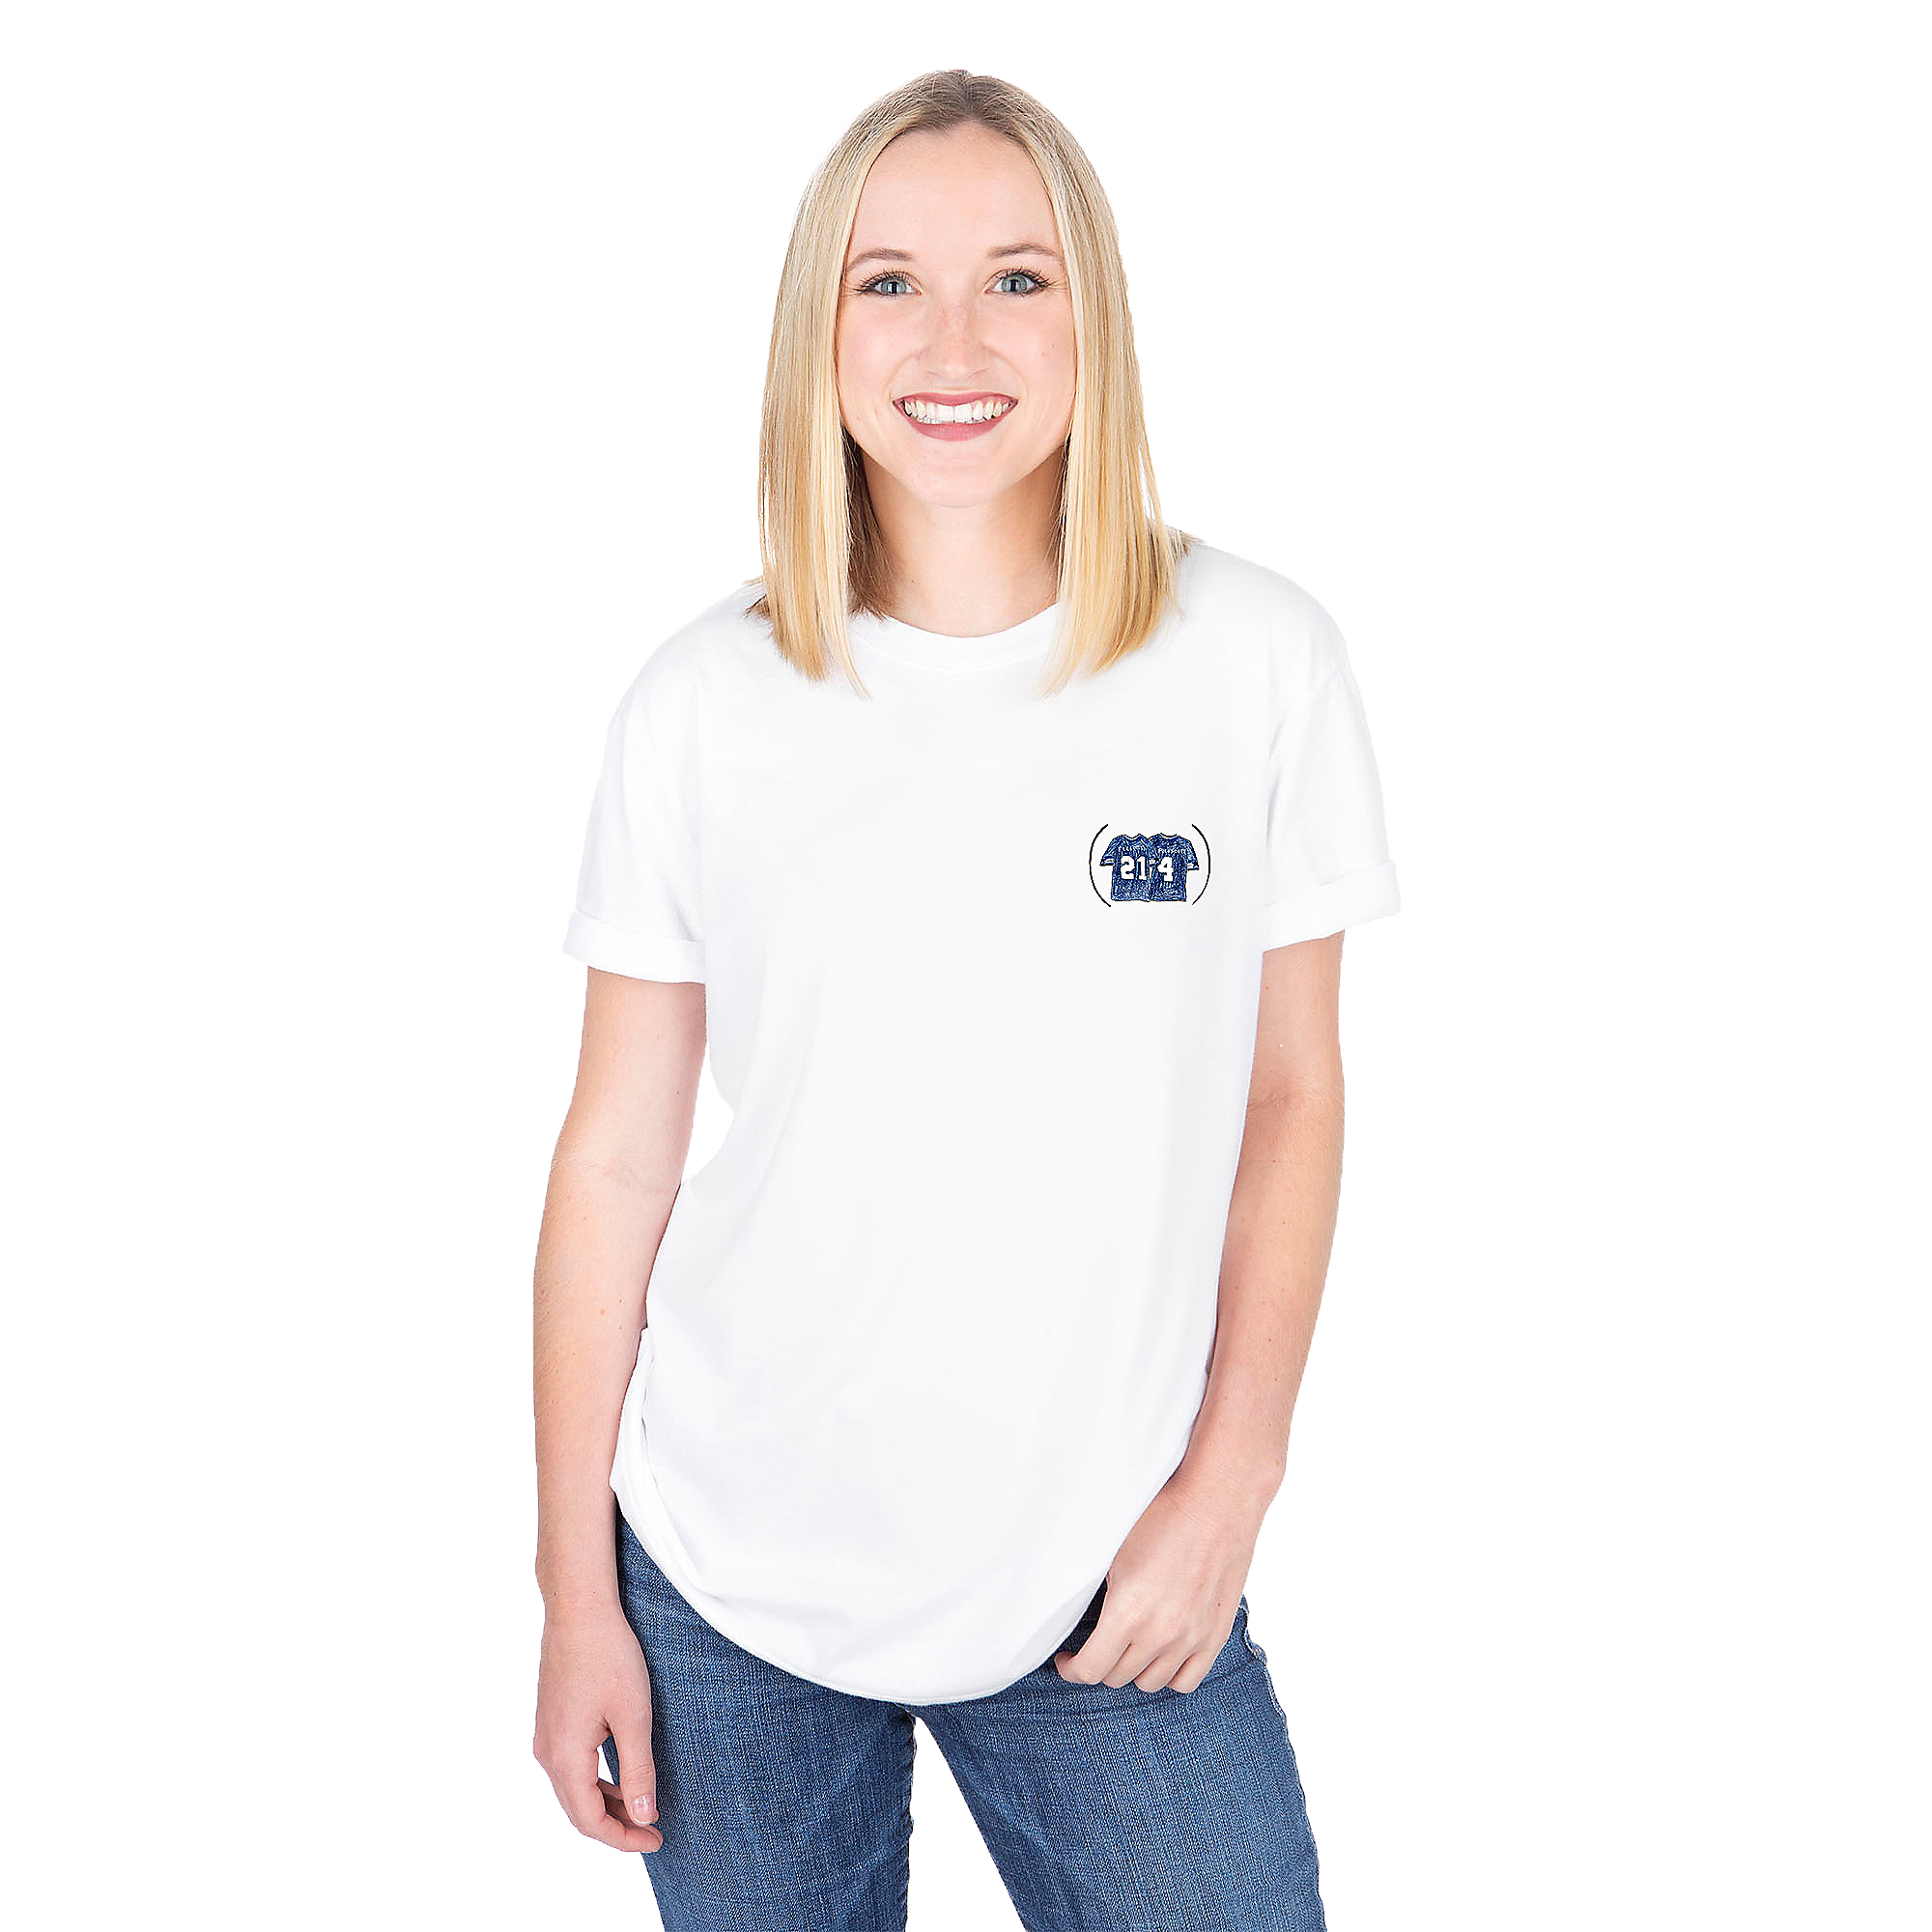 Dallas Cowboys Unfortunate Portrait Unisex Area Code 214 Tee